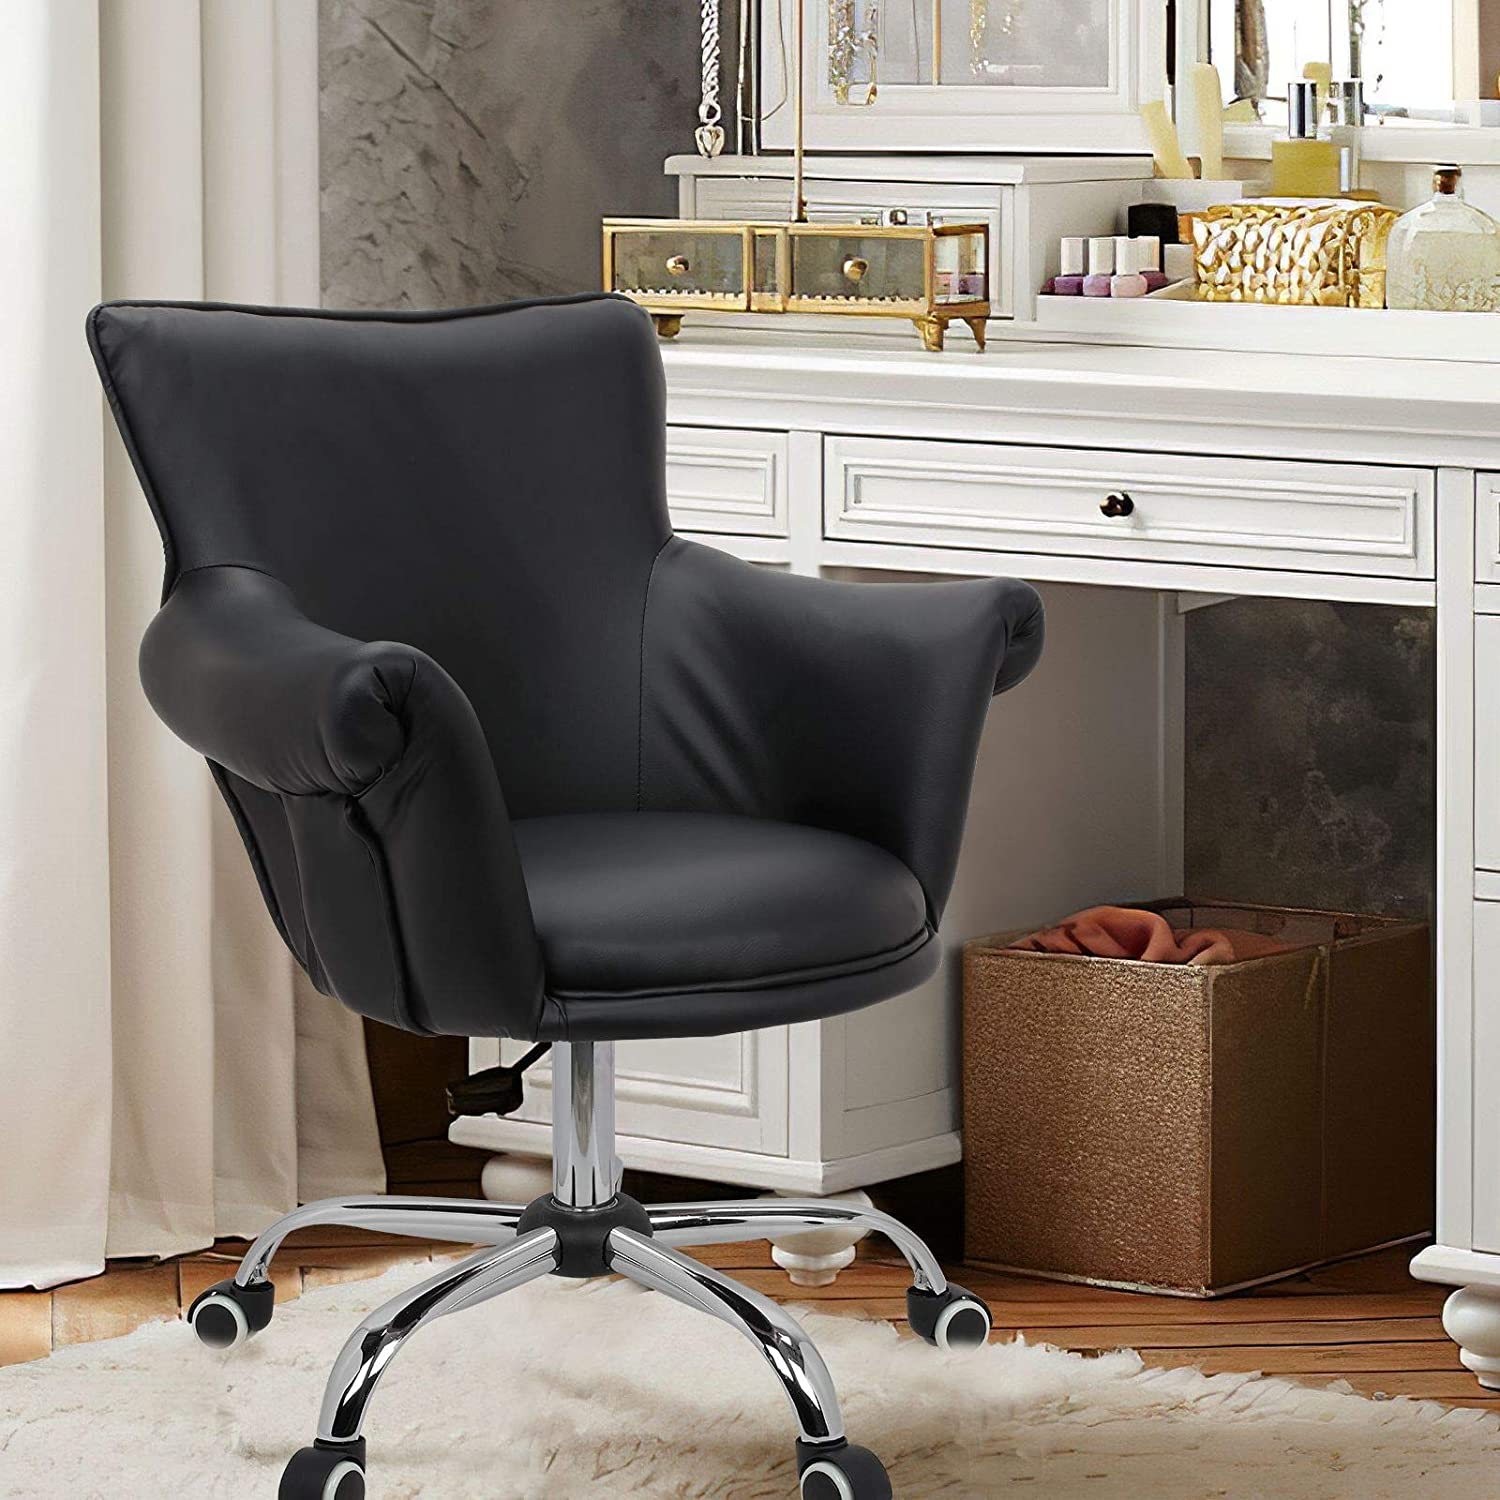 Magshion Office Desk Chair Bar Stool Beauty Nail Salon Spa Vanity Seat  (PULeather Black), PU Leather